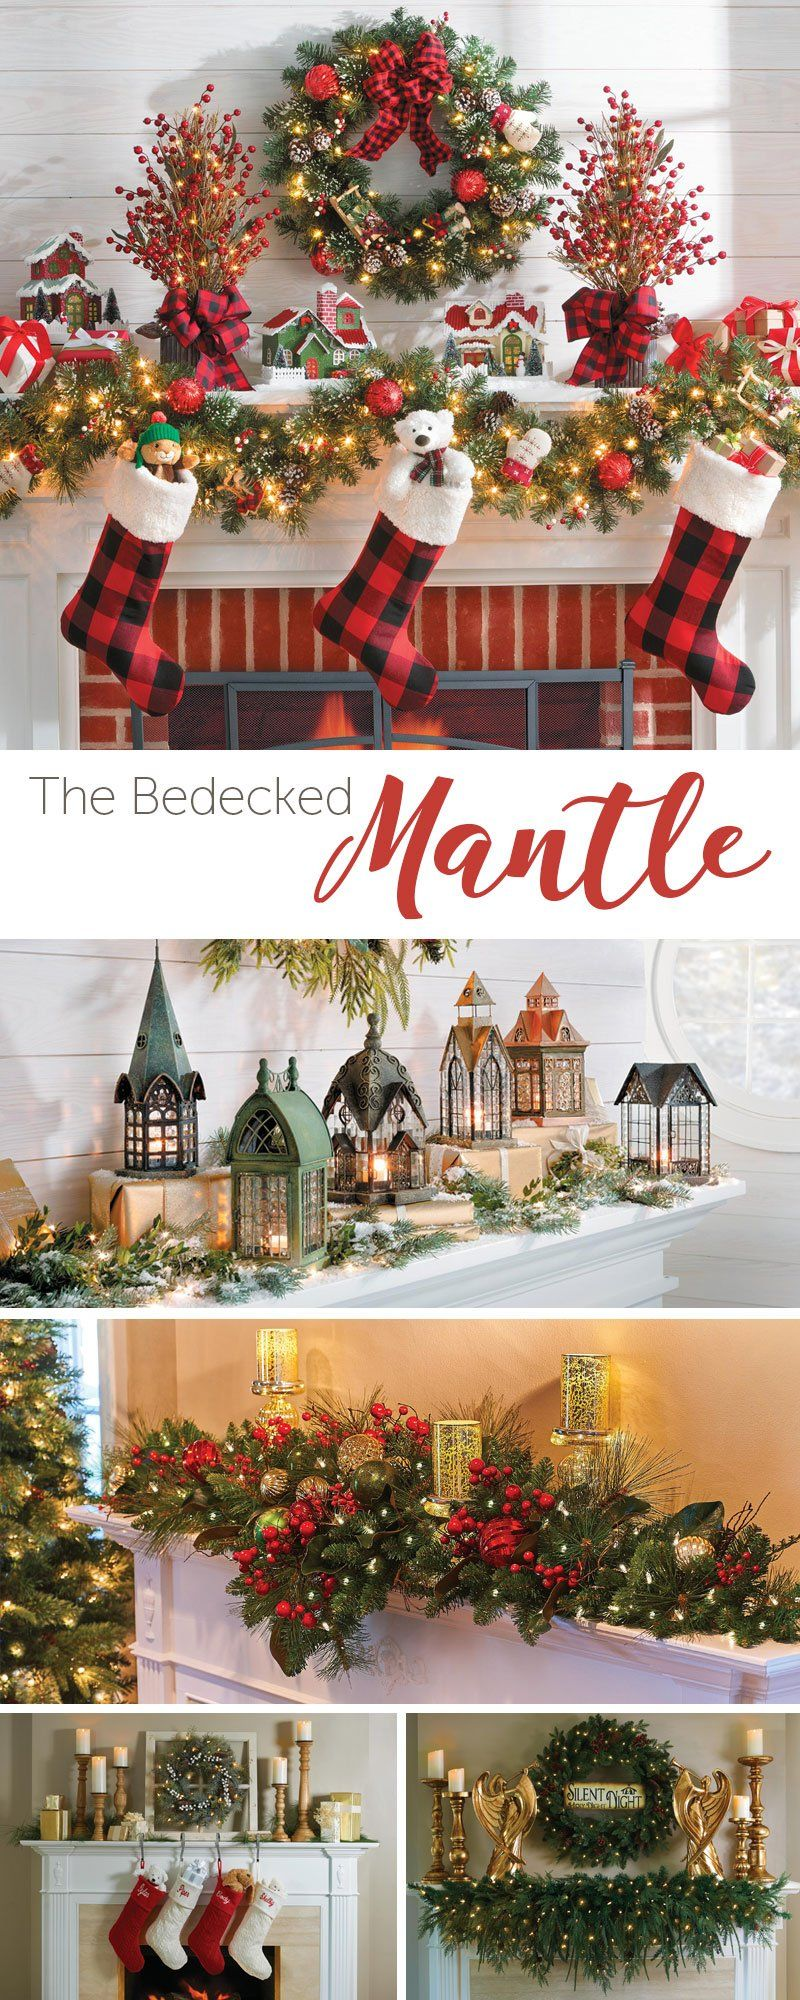 dont know how to decorate your mantel for christmas check out our ideas - Decorating Your Mantel For Christmas